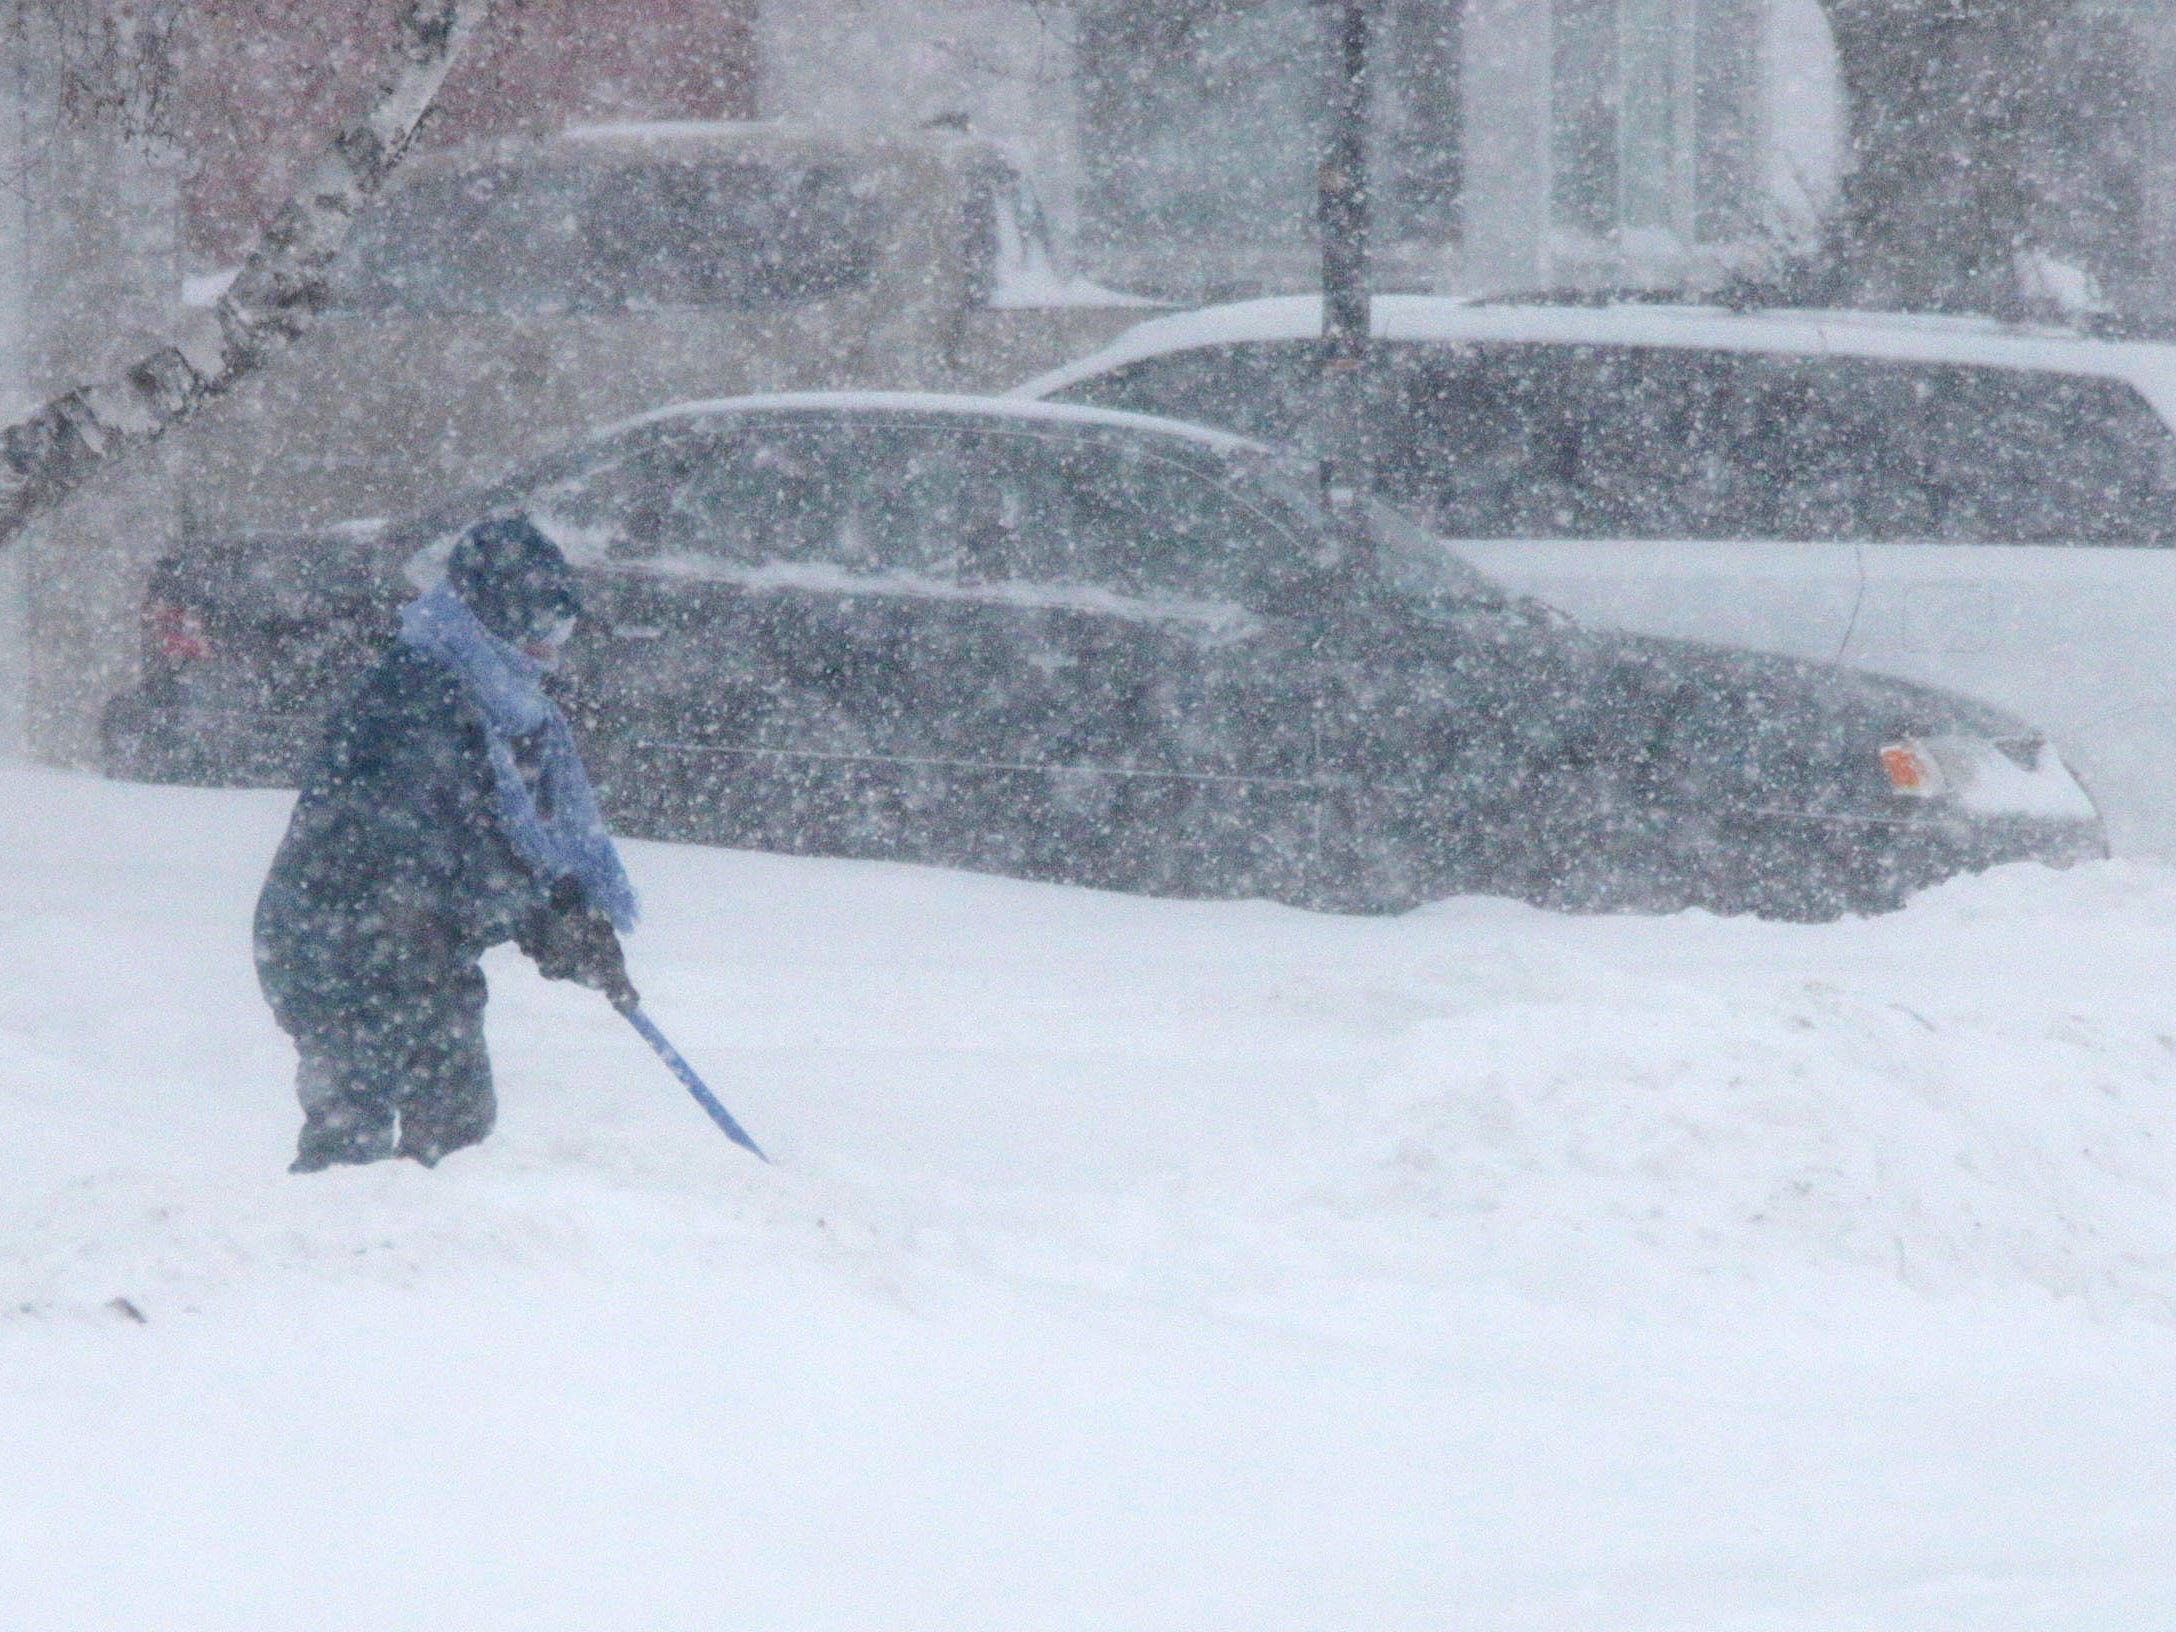 A resident shovels snow in Sheboygan, Wis.